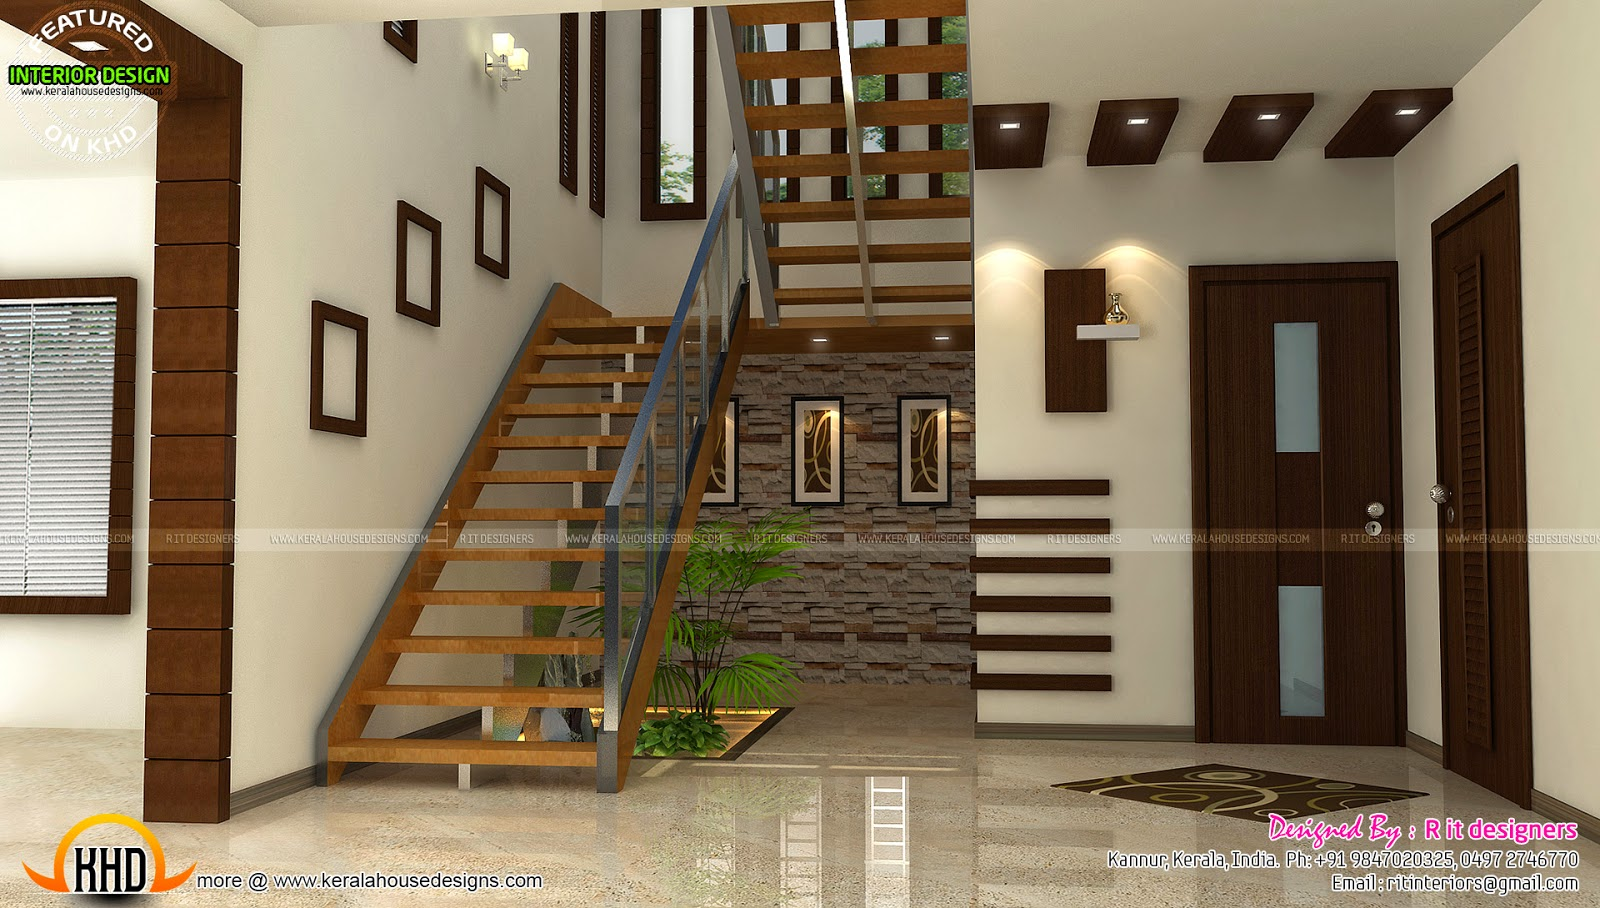 staircase bedroom dining interiors kerala home design and floor plans. Black Bedroom Furniture Sets. Home Design Ideas